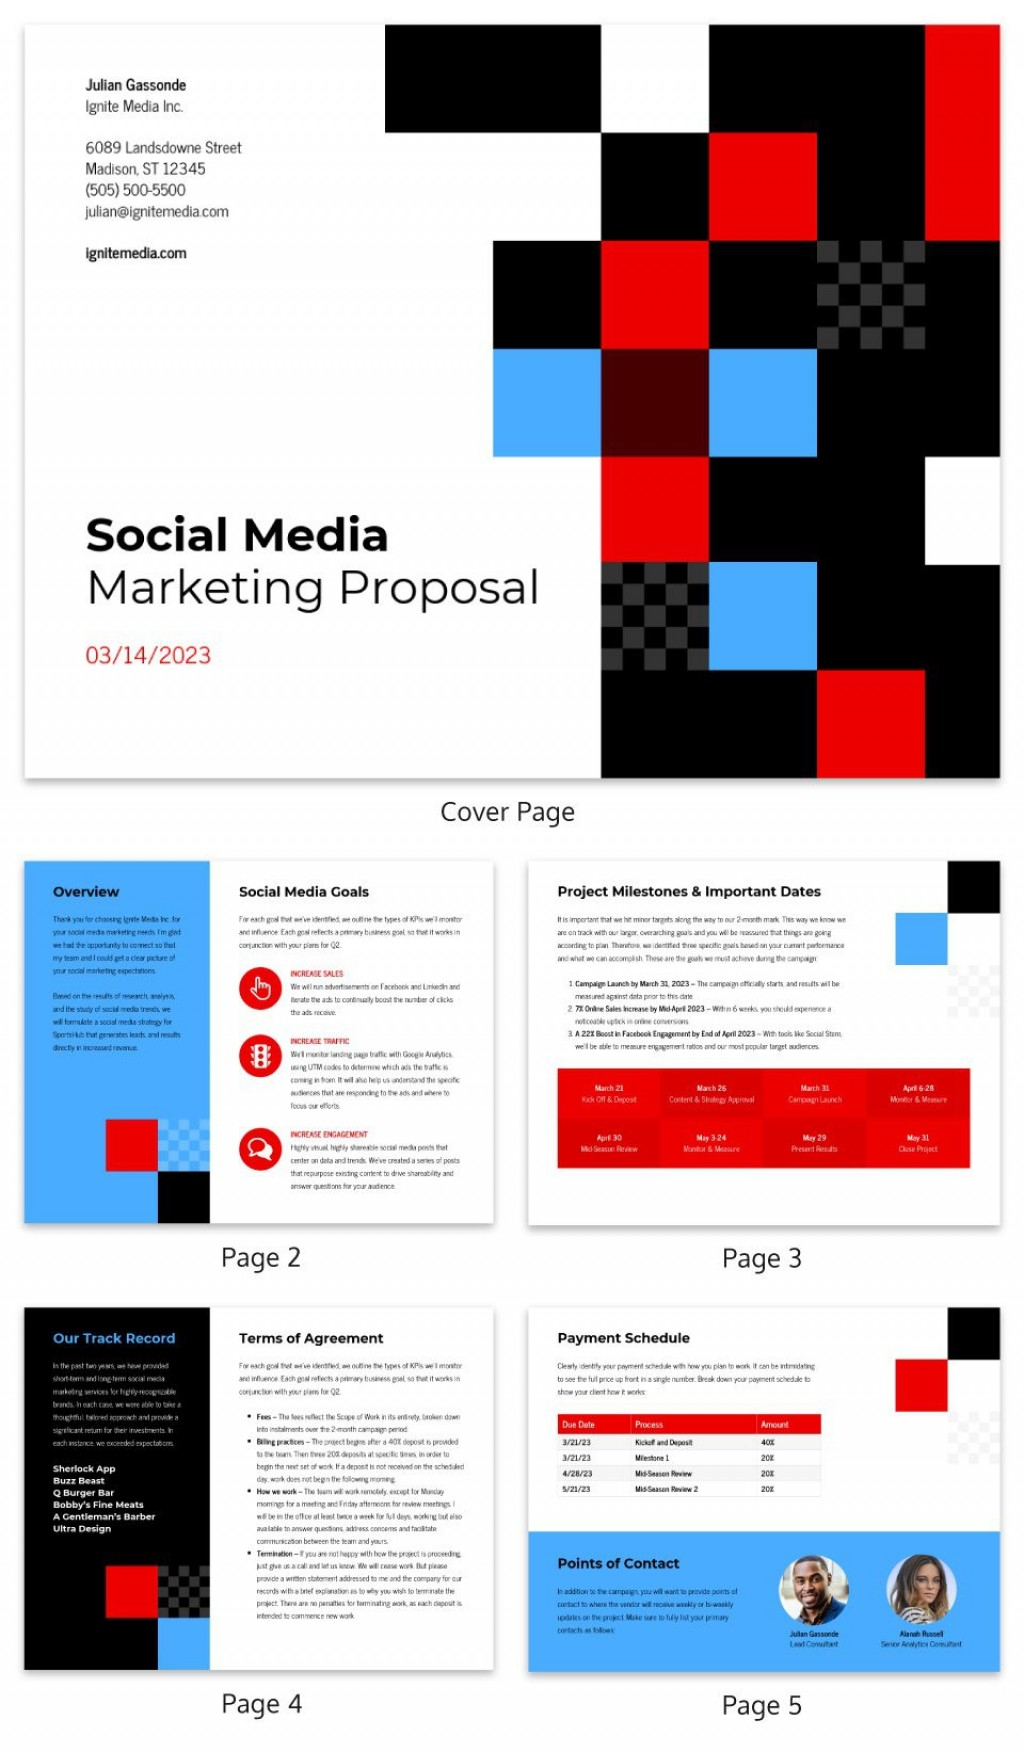 007 Dreaded Social Media Proposal Template High Resolution  Ppt Marketing Word 2019Large